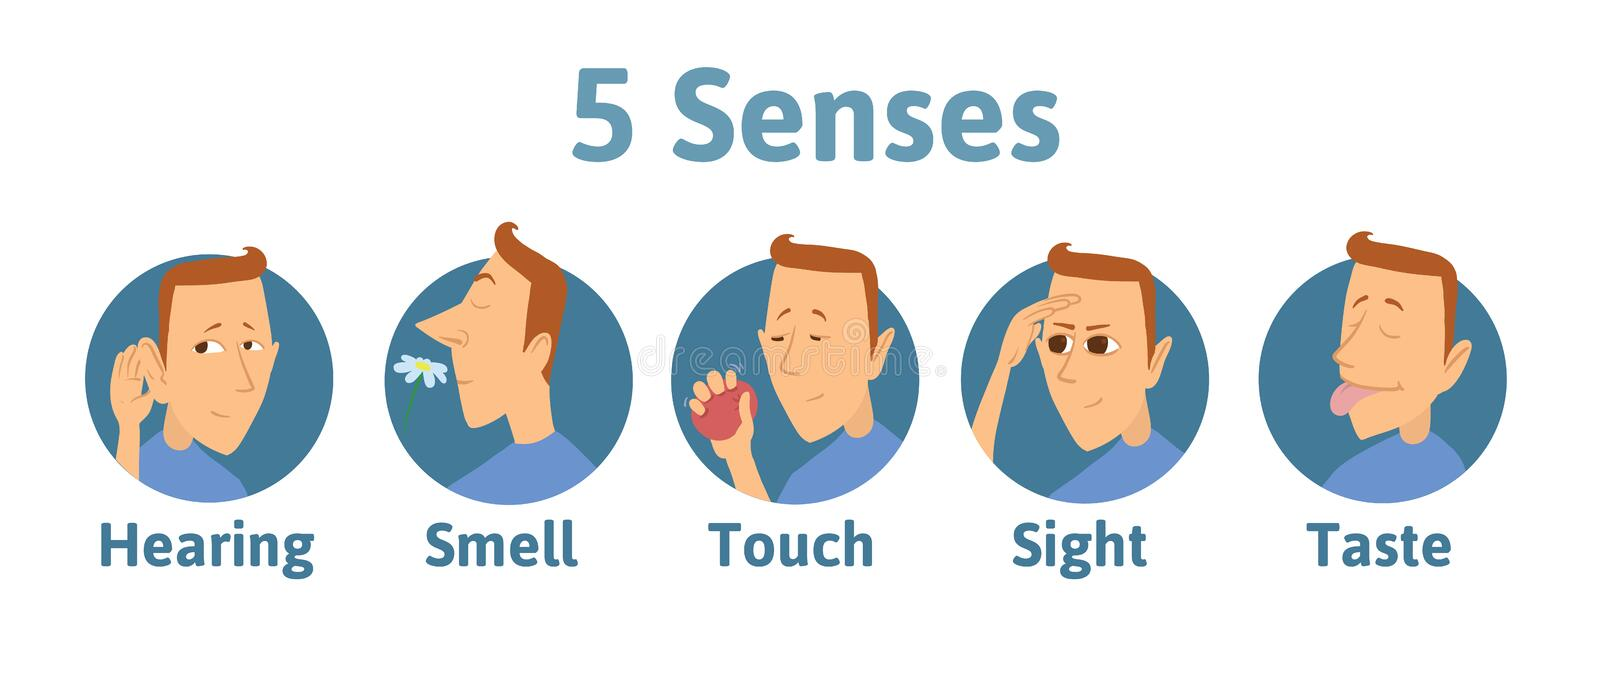 Set of five human senses icon: hearing, smell, touch, vision, taste. Icons with funny man character in circles. Vector stock illustration